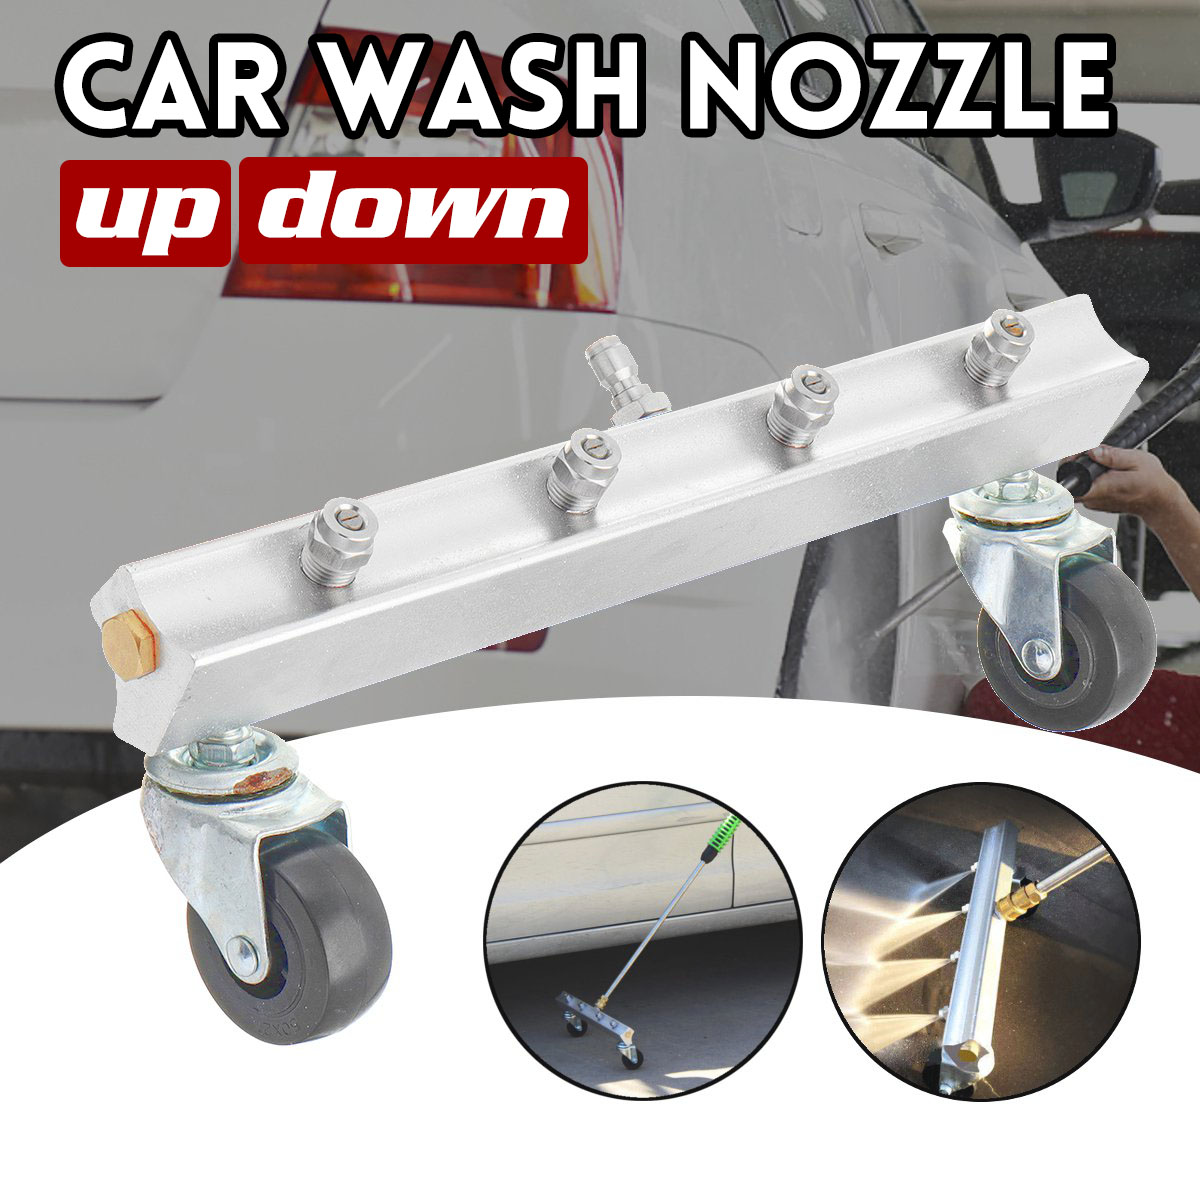 Multi-function Car Wash Nozzle Factory Home Up/Down Washing Machine 1/4 insert